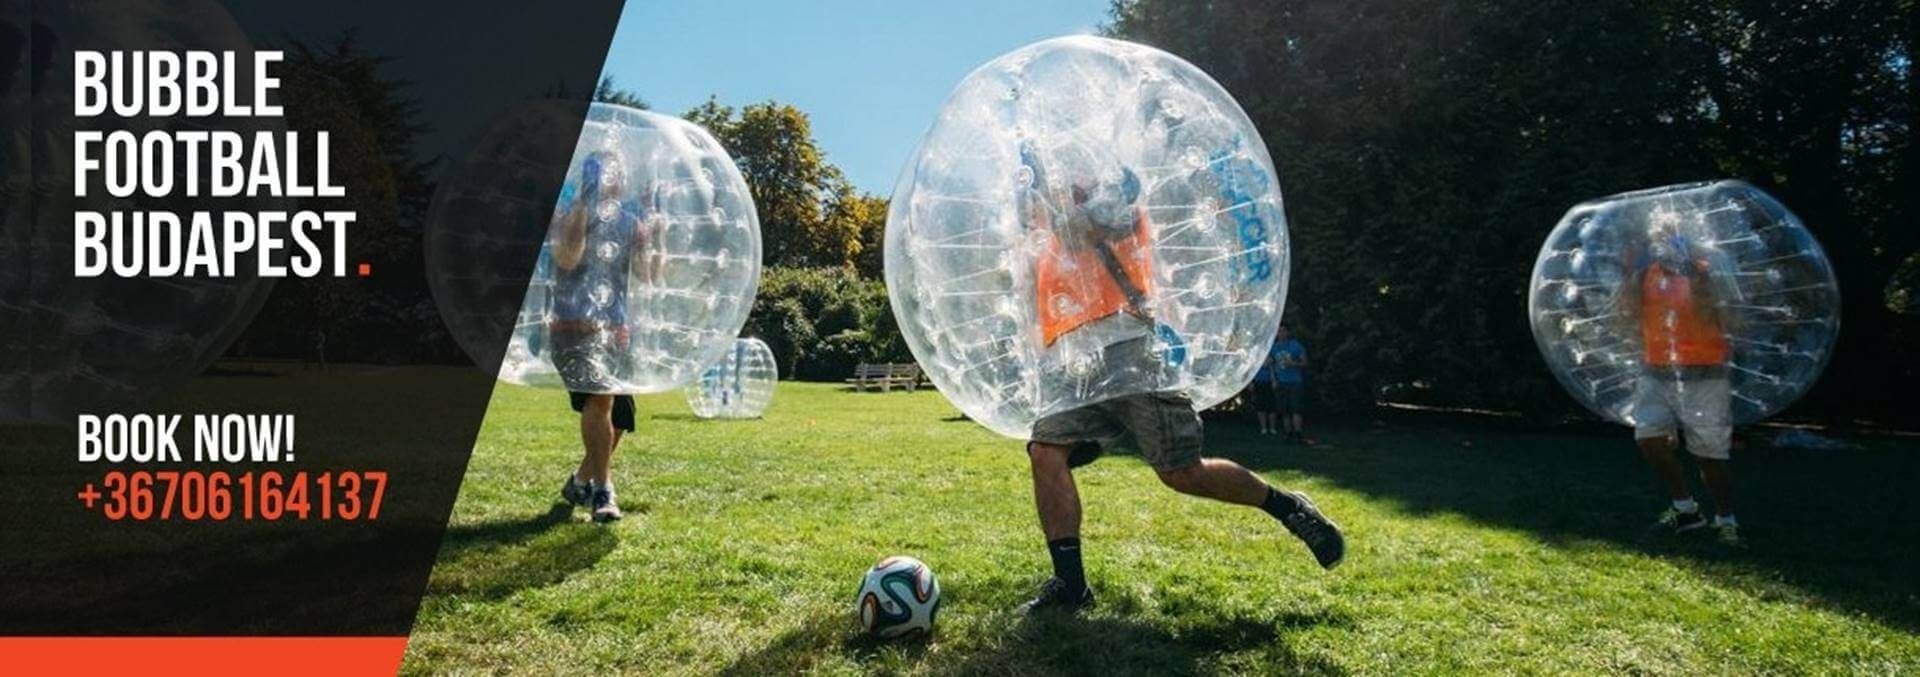 Bubble soccer stag party